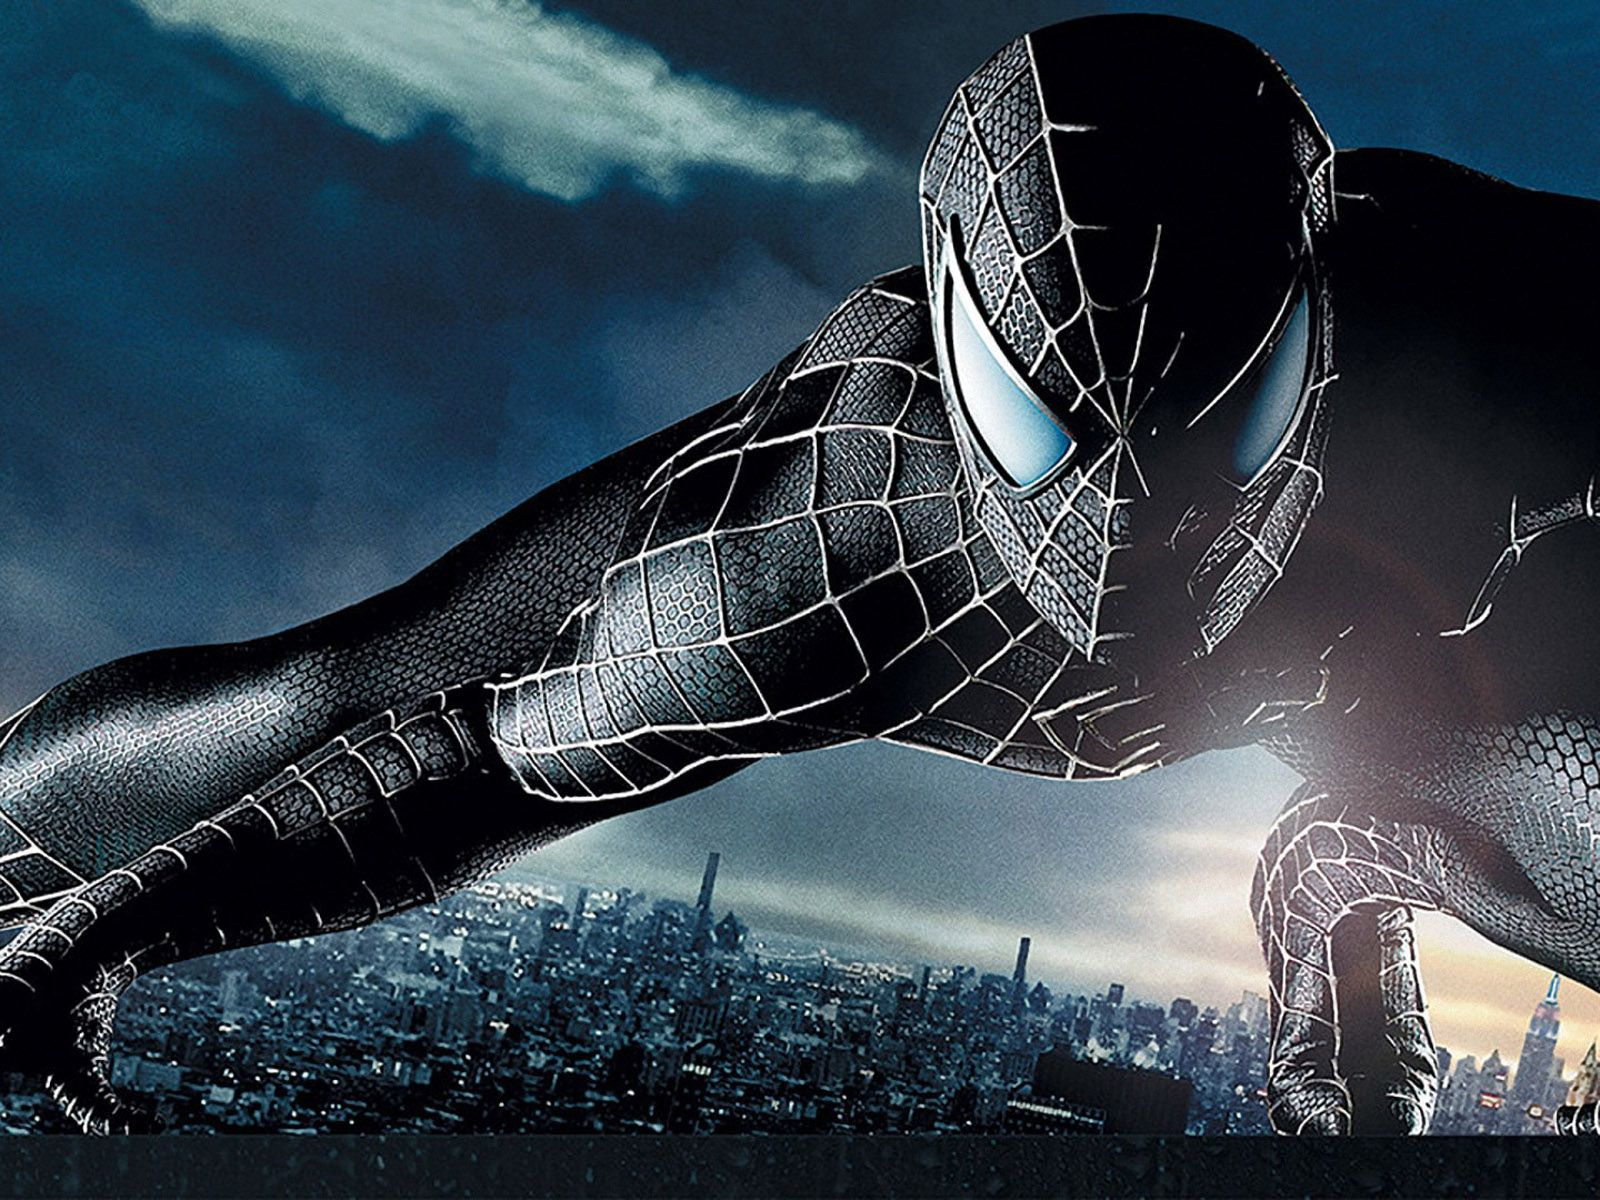 Free Spider Man 3 Hd Download Download Free High Resolution Hd Widescreen Spider Man 3 Hd Wallpapers And Pictur Black Spiderman Spiderman Symbiote Spiderman